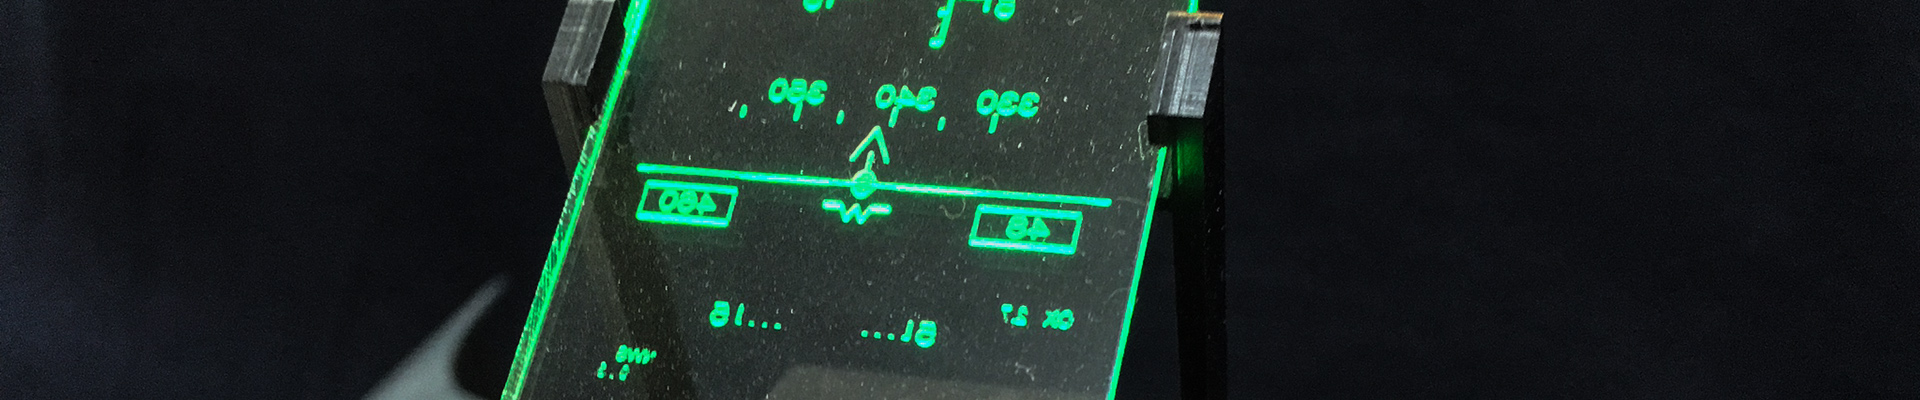 HUD - Head Up Displays